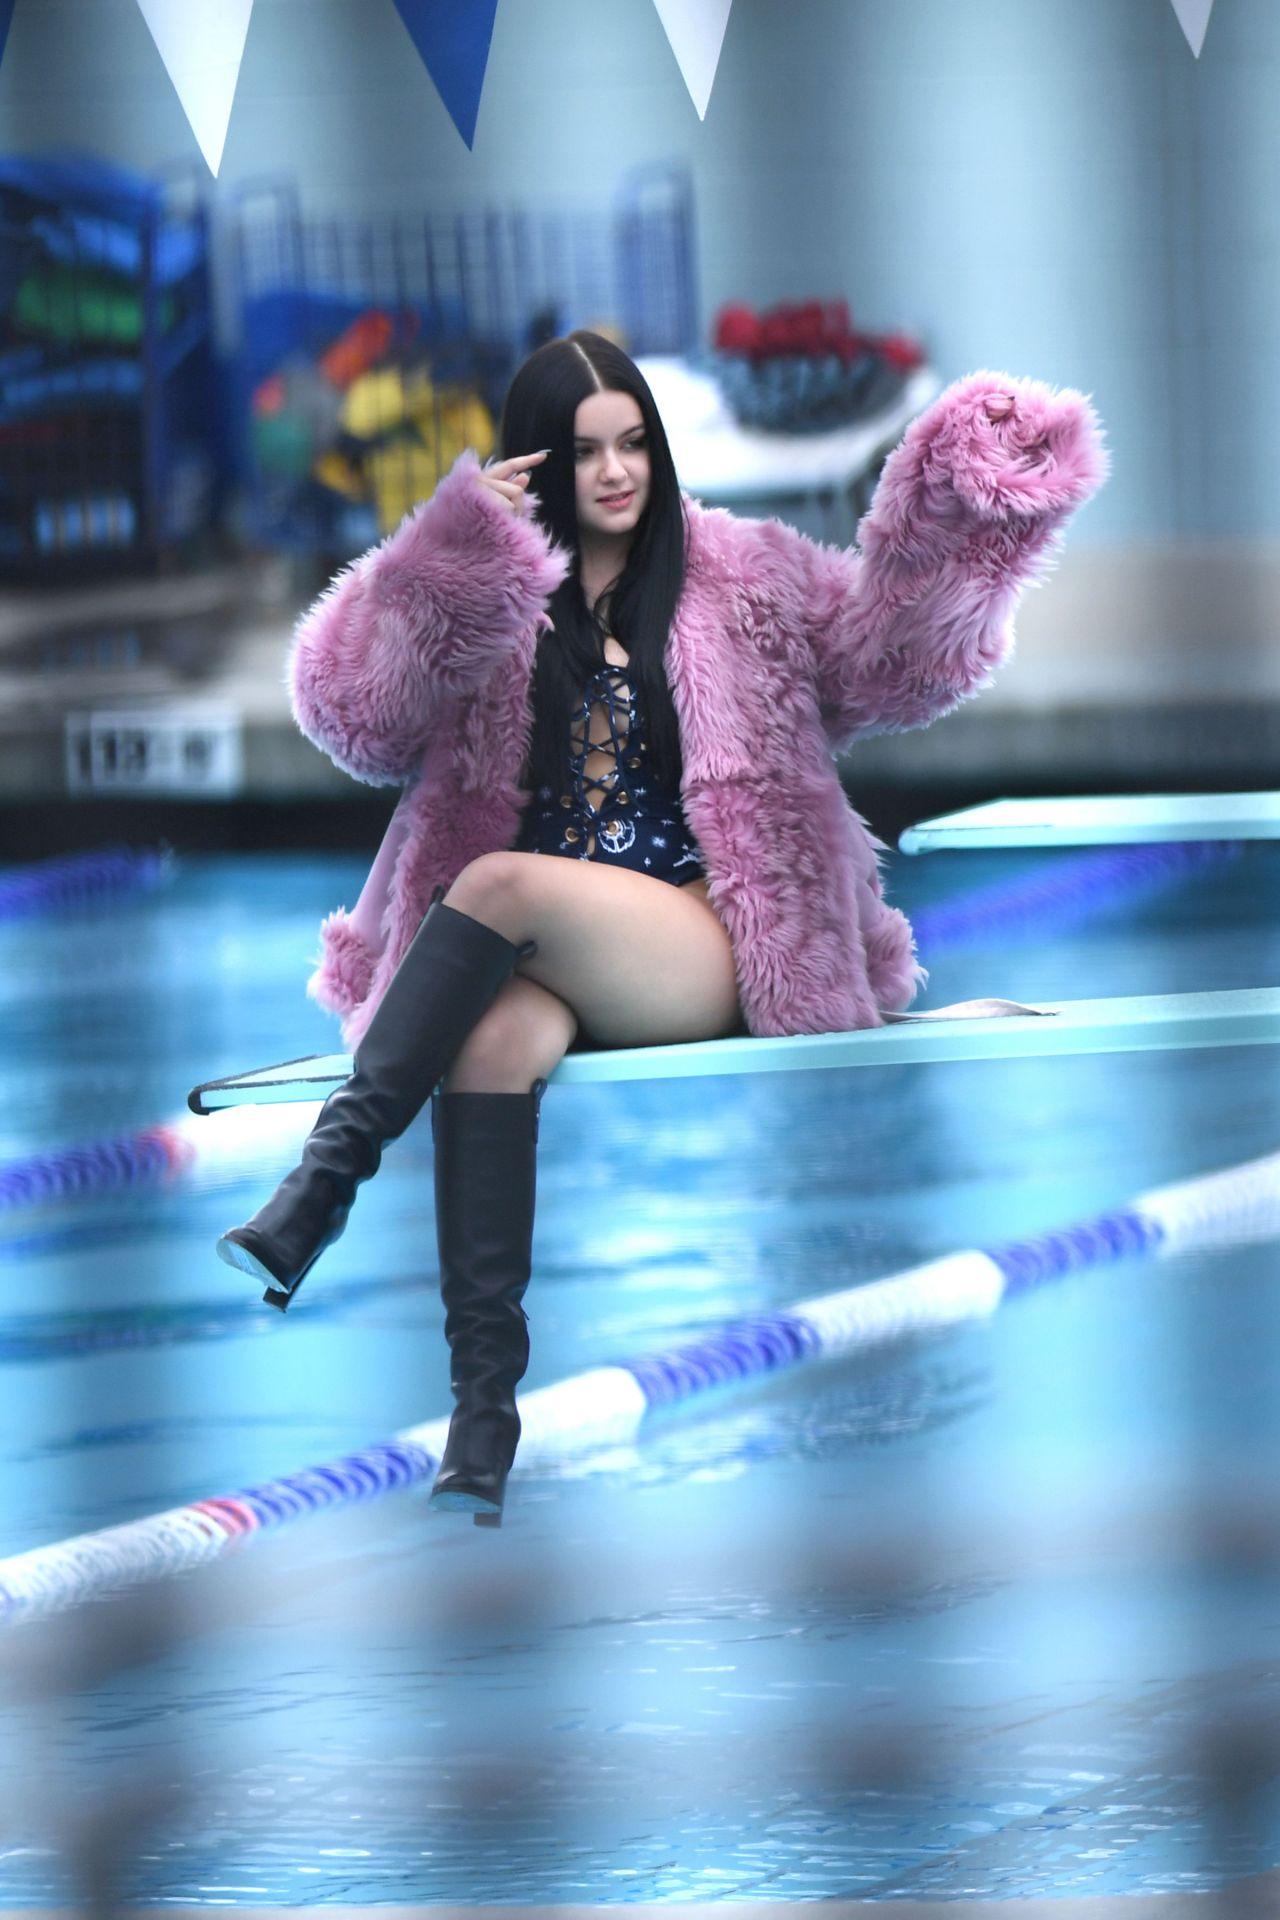 ariel winter photoshoot in los angeles 1029 2016